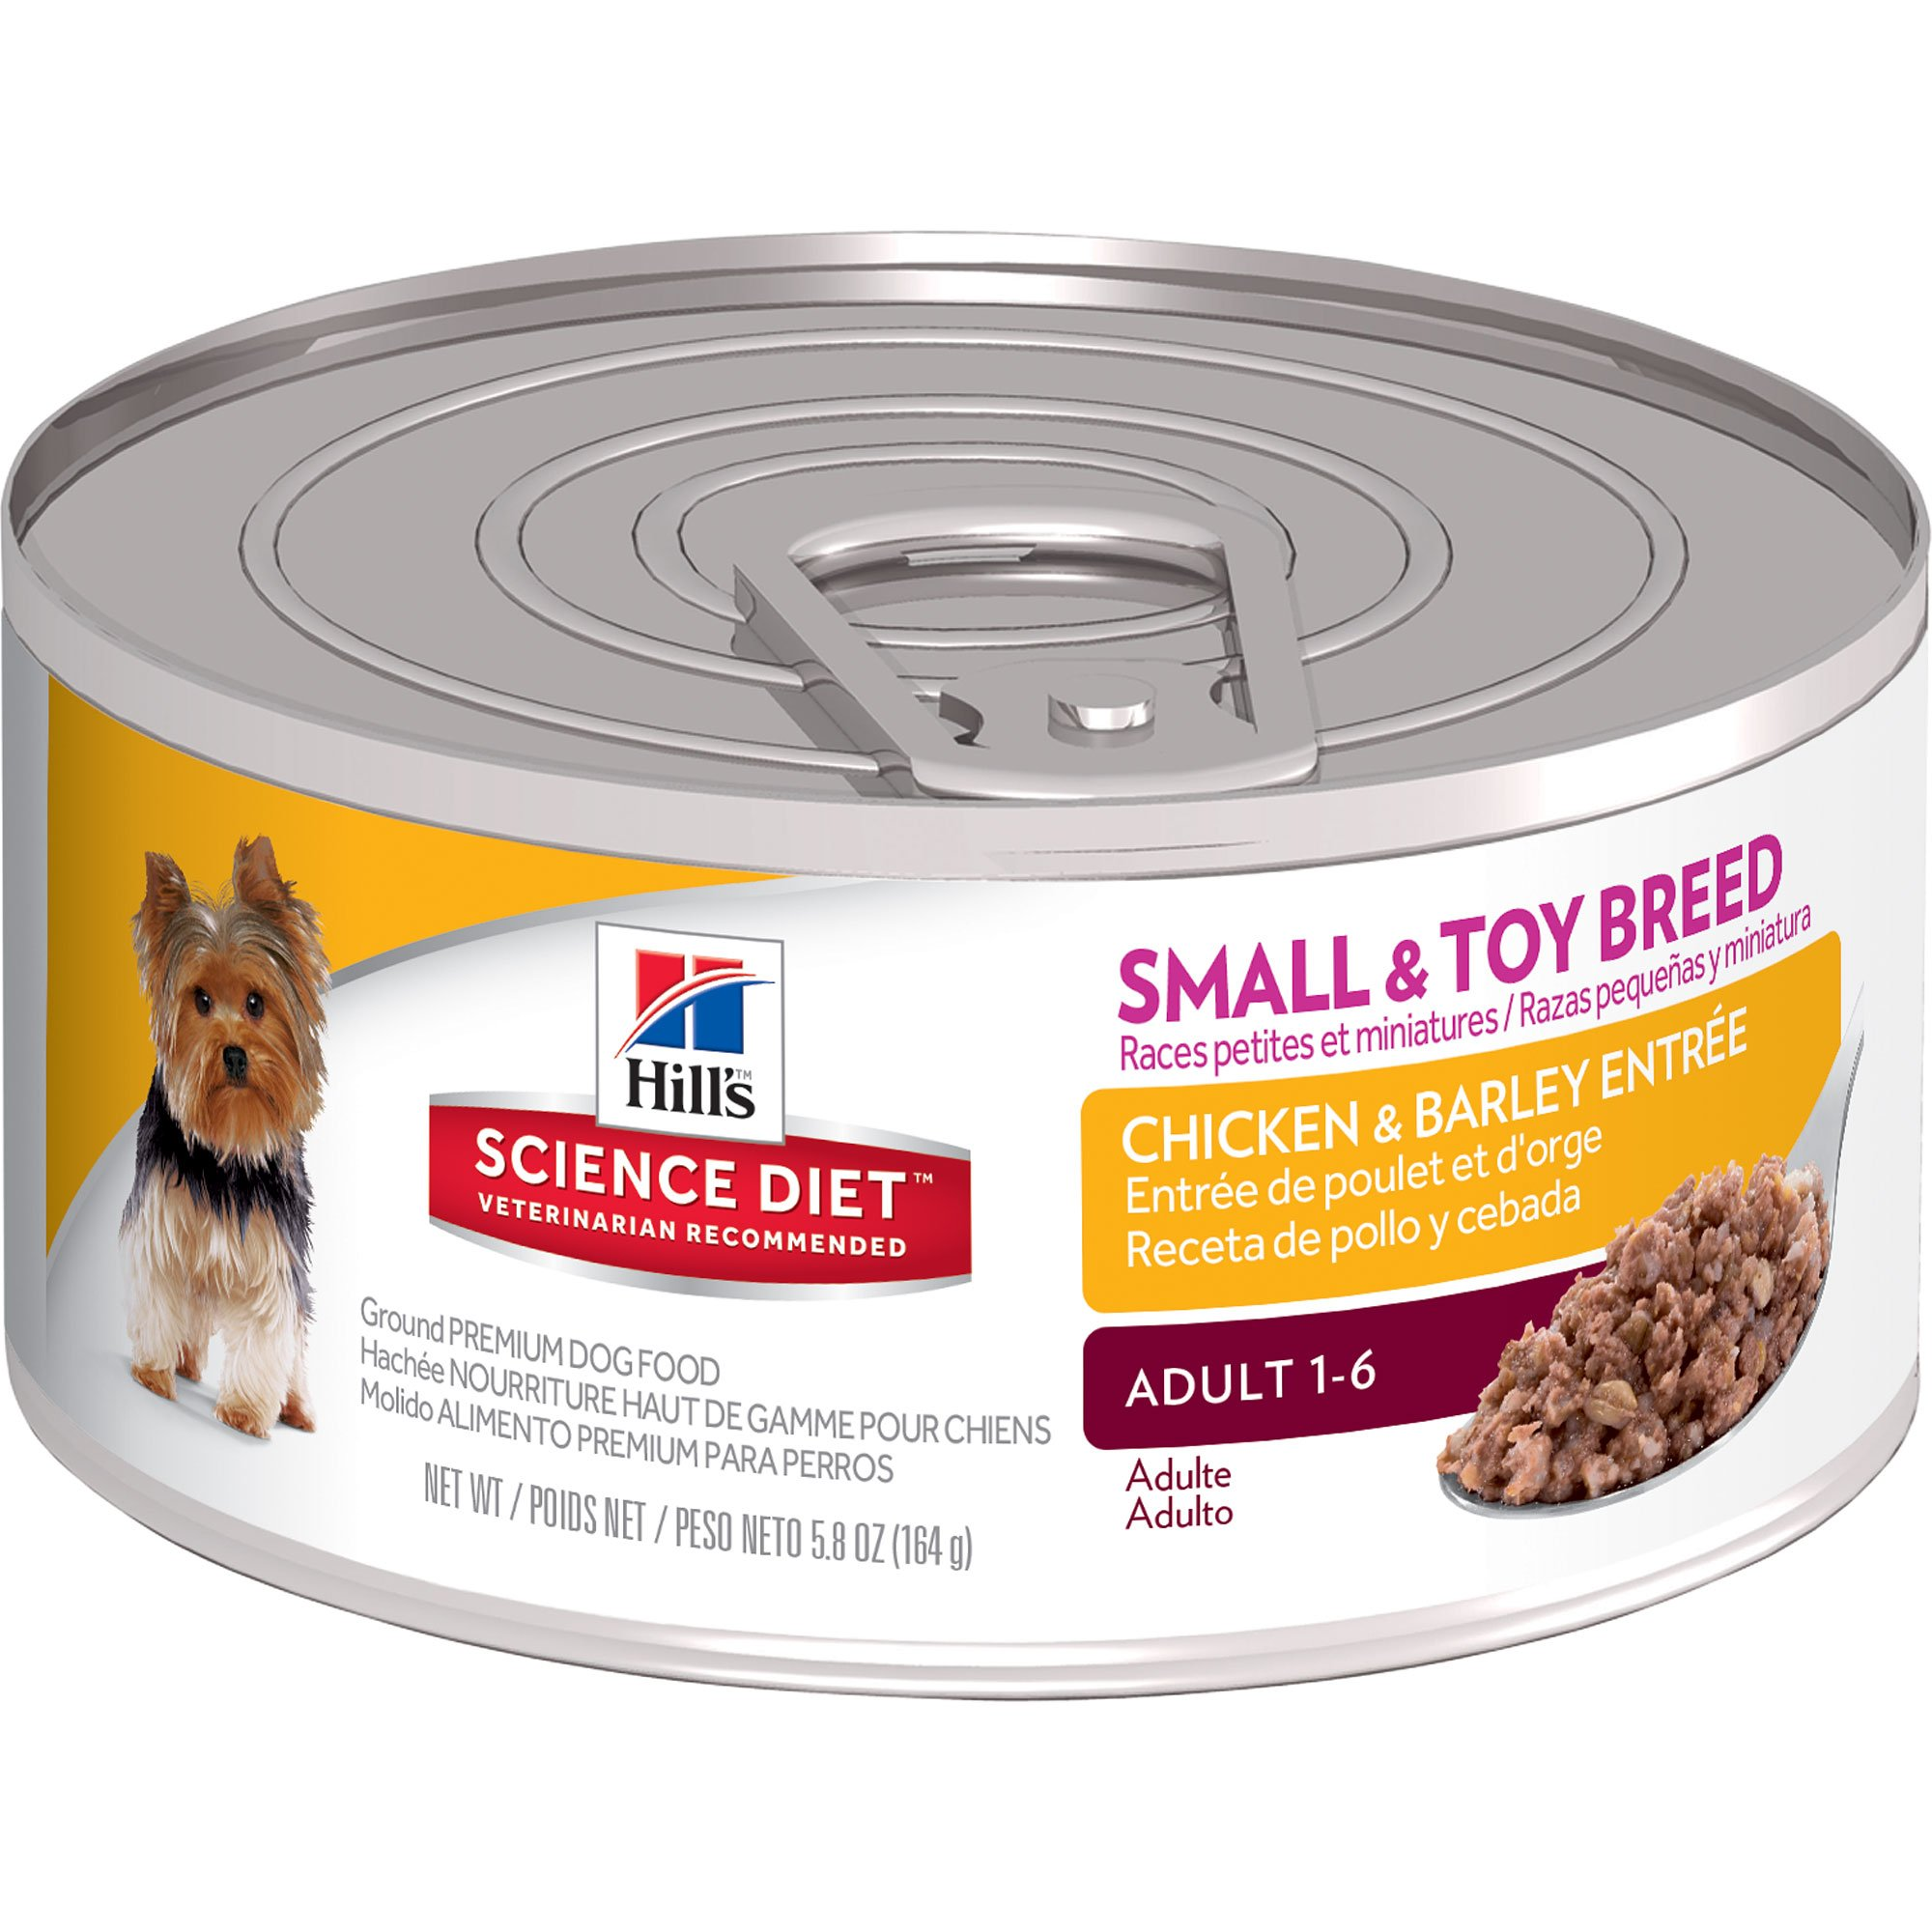 Small Toy Food : Hill s science diet adult small toy breed chicken